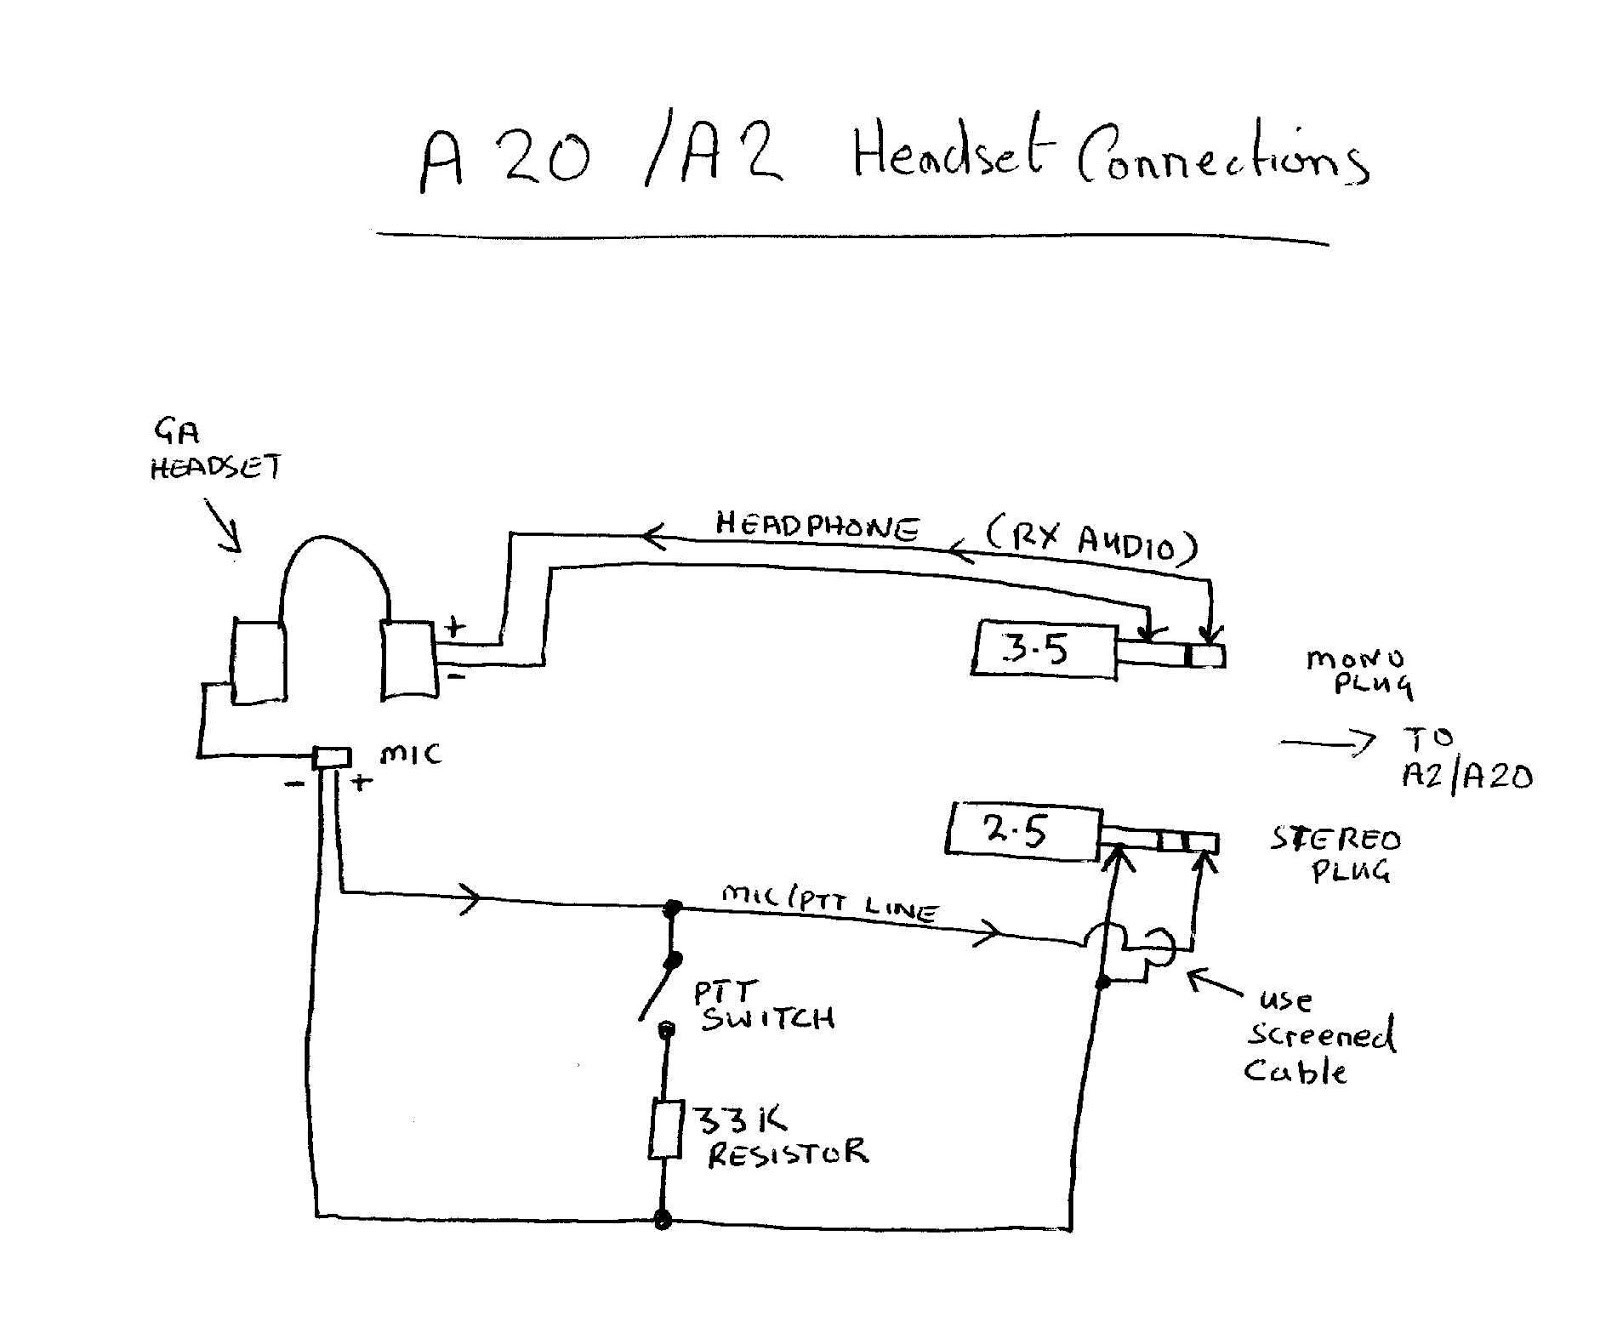 headphone with mic wiring diagram how to wire up spotlights bose a20 collection sample